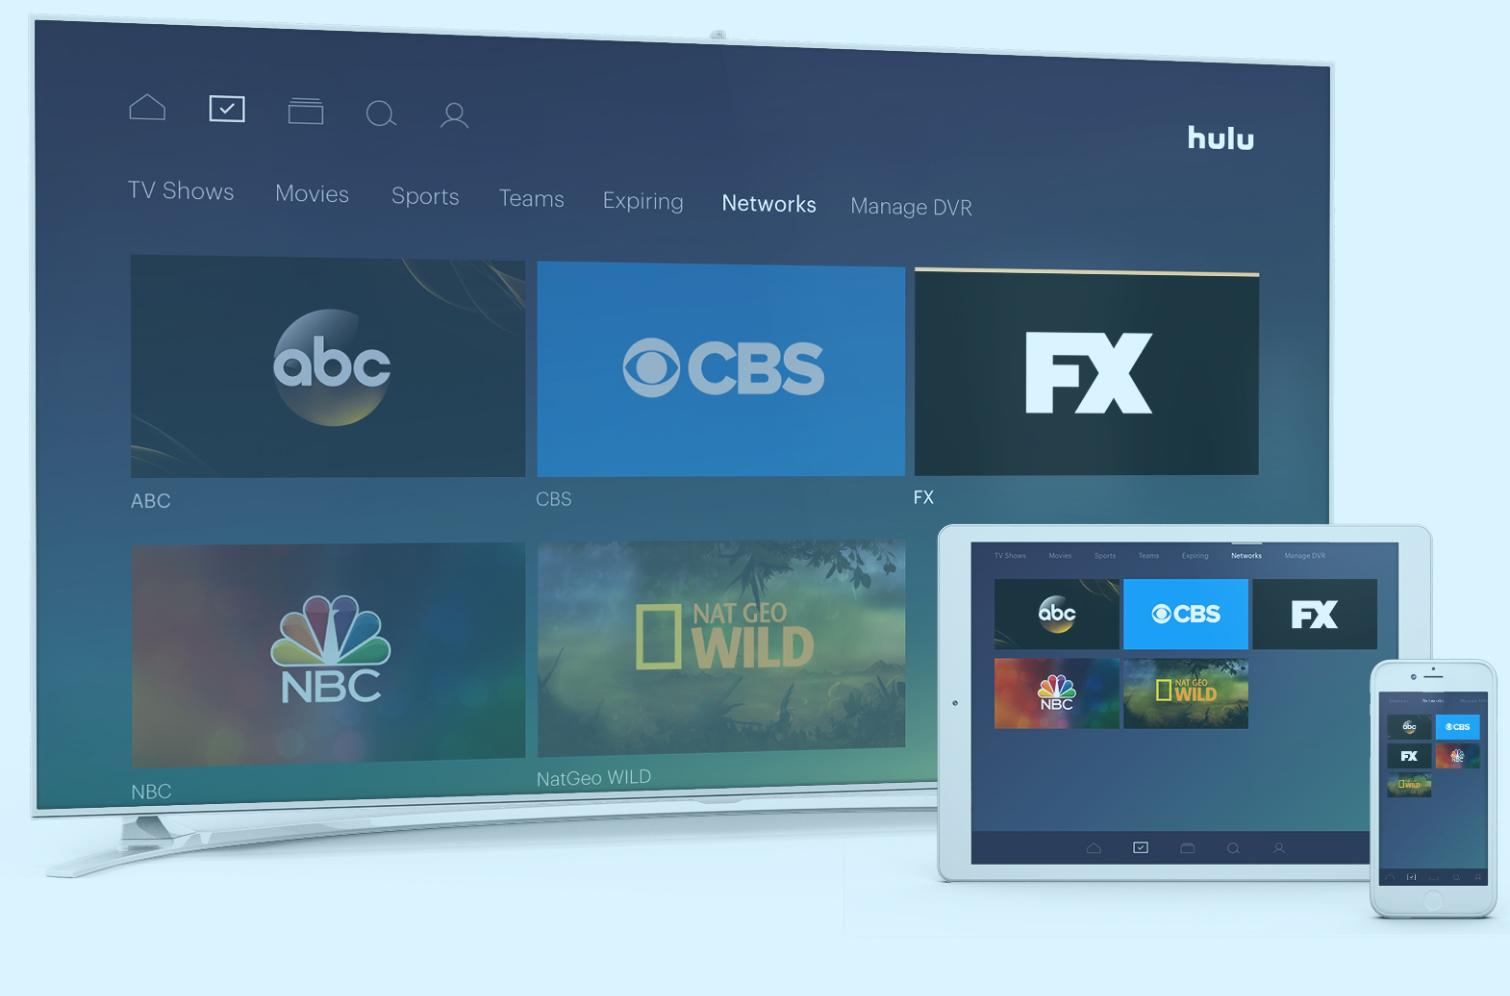 Hulu with Live TV Offers Good Channels for a High Price